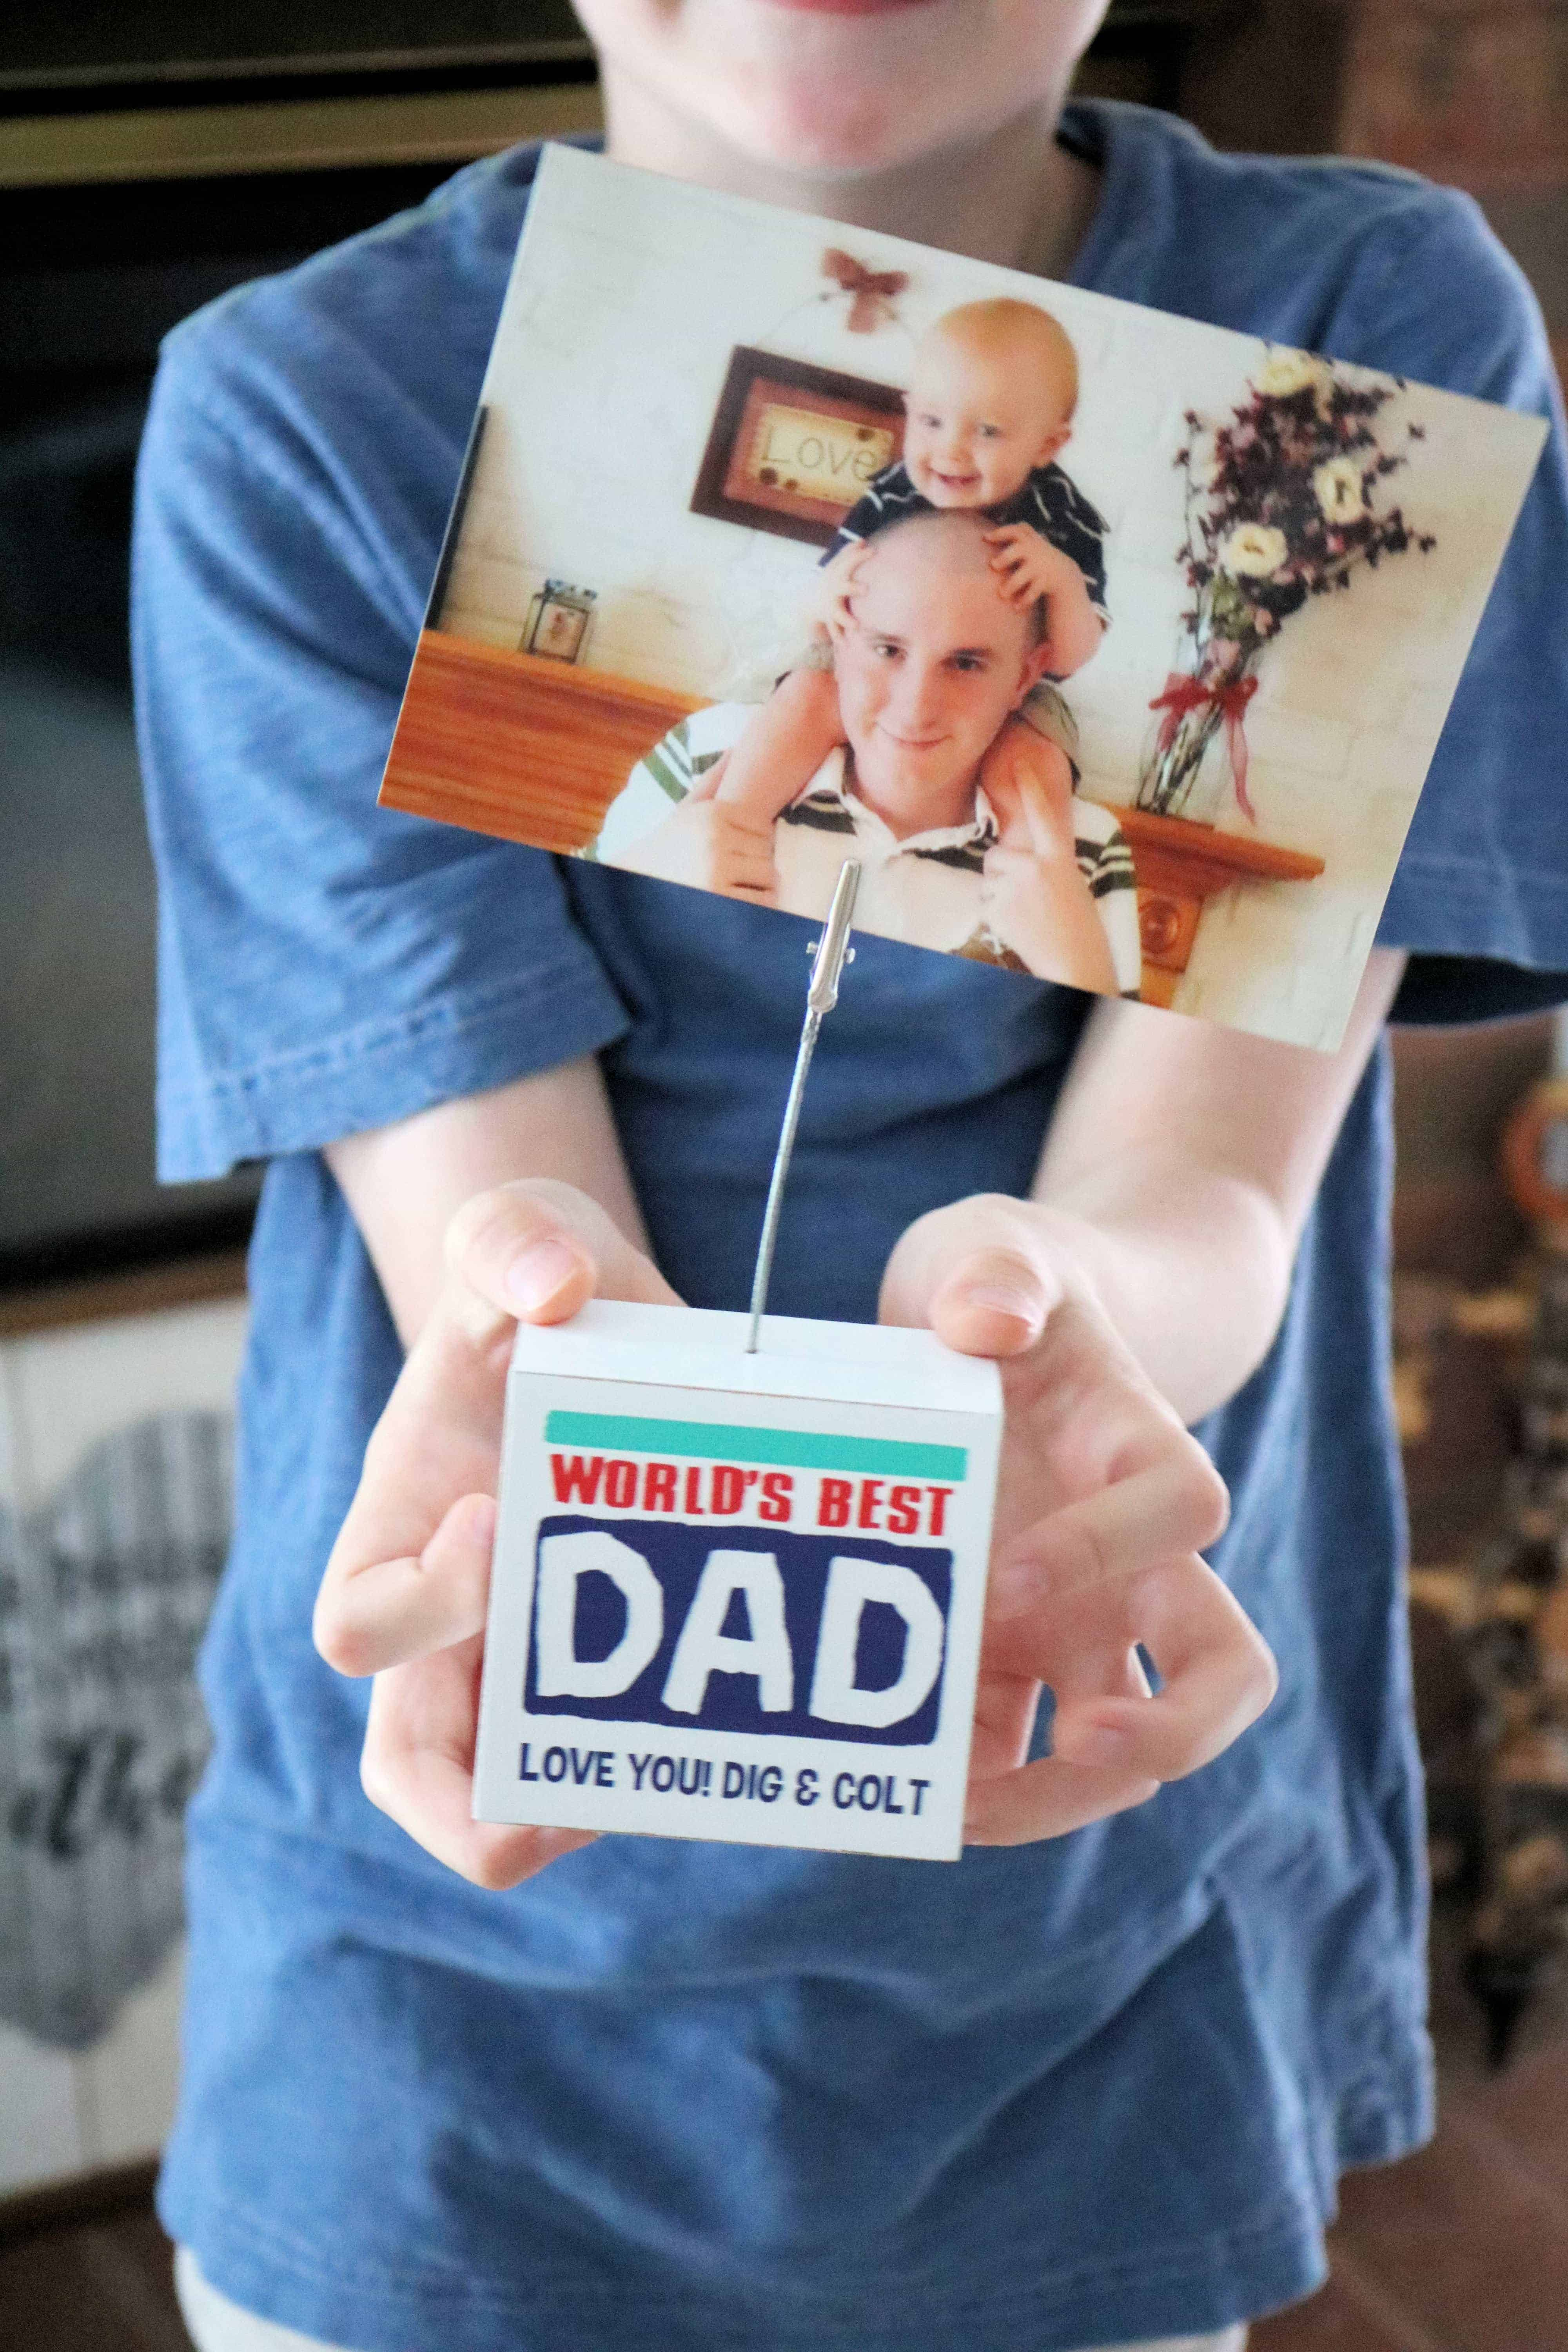 Looking for the best Father's Day gifts? Check out these cute and unique personalized Father's Day gift ideas that dad will love! #ad #personalizedmall #fathersday